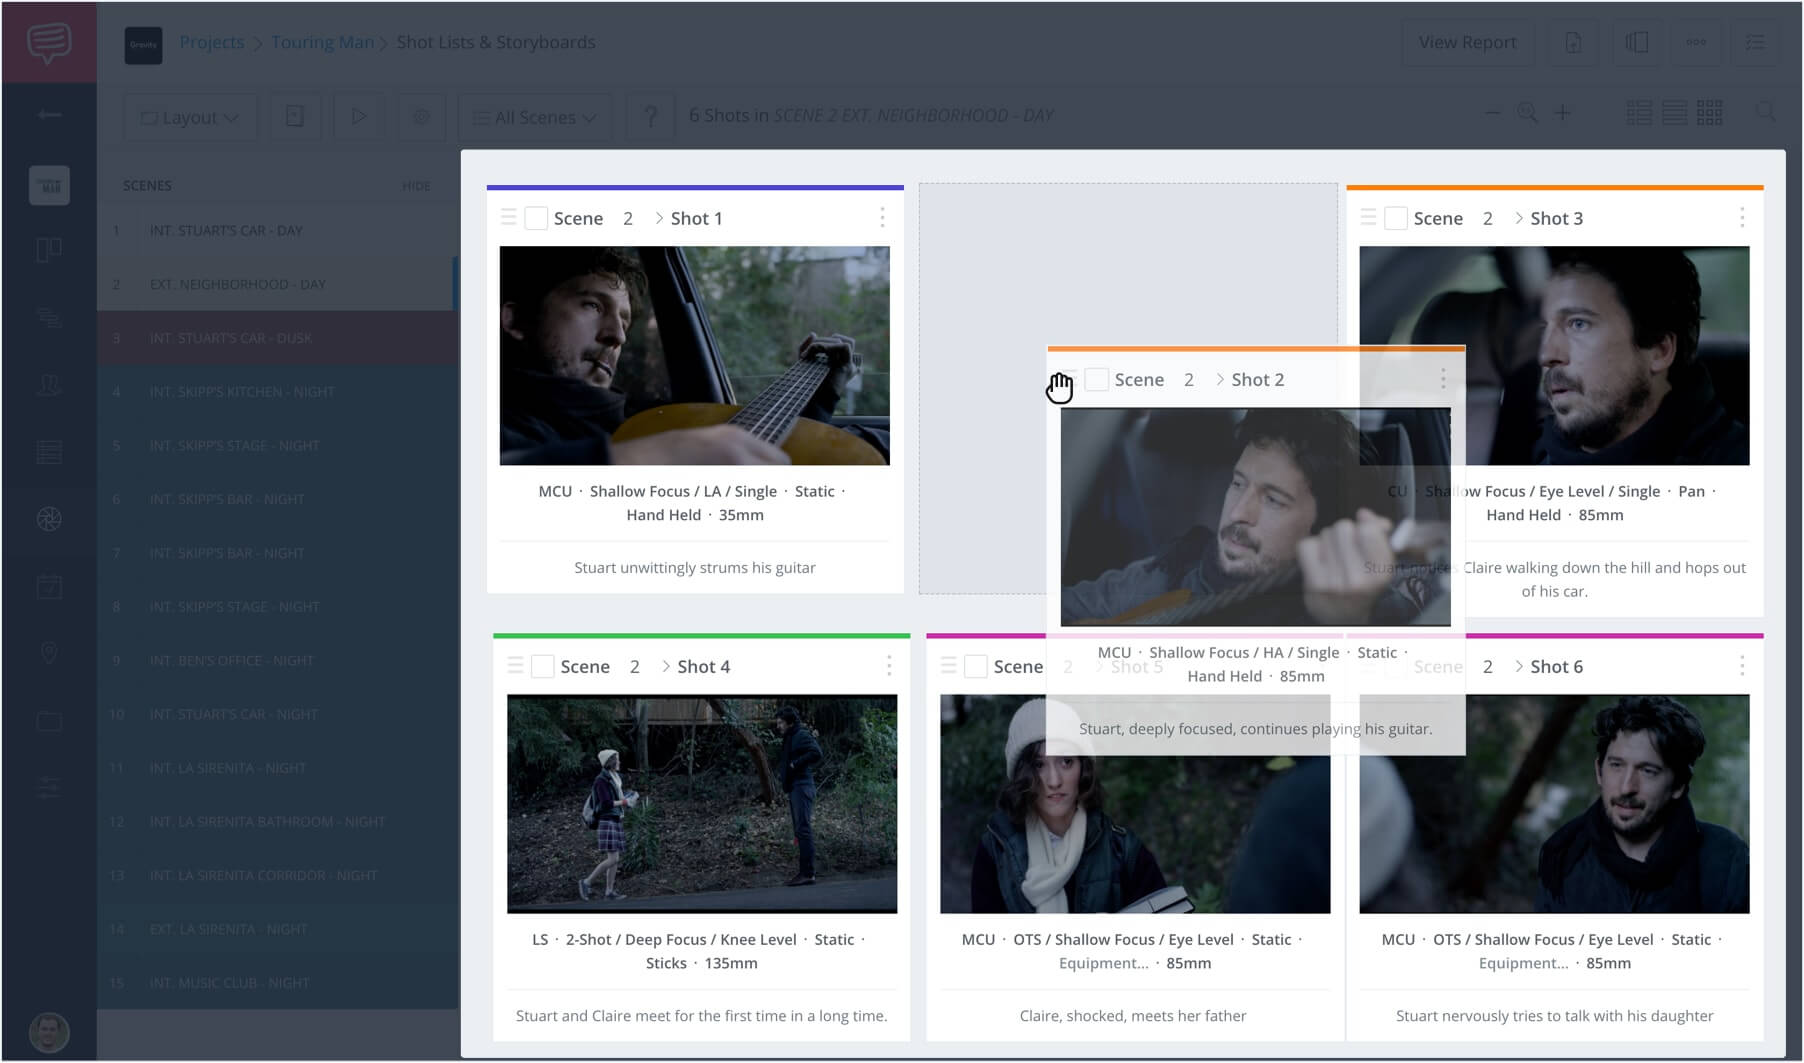 Storyboard That Alternative - StudioBinder Storyboard Creator - Film Project Management Software